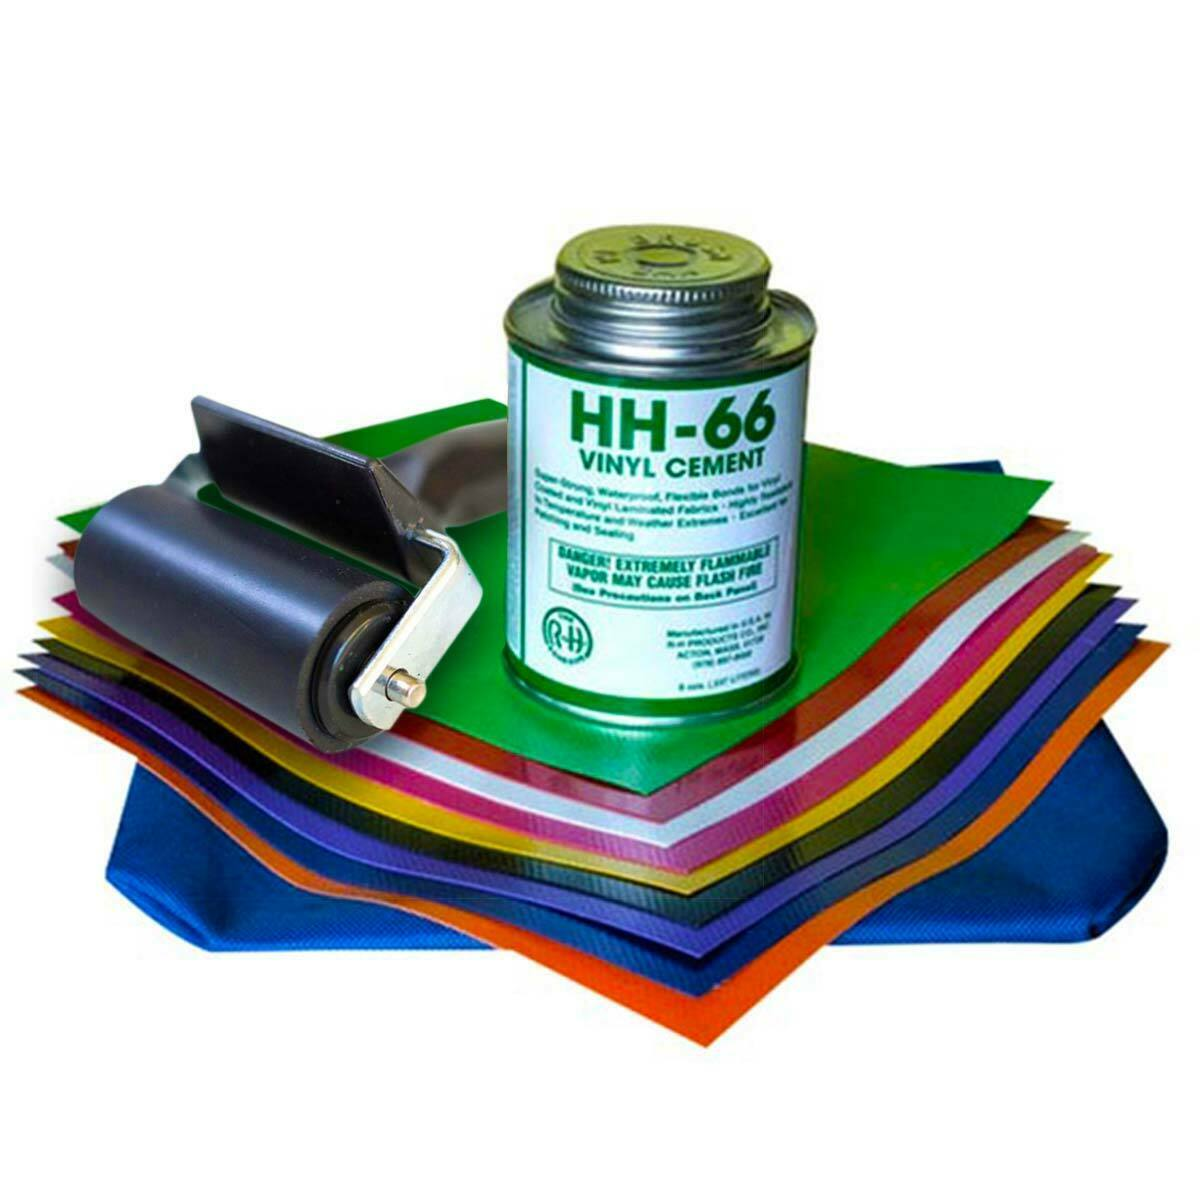 pro-inflatable-bounce-house-repair-kit-8-x-8-vinyl-patch-hh66-glue-seam-roller